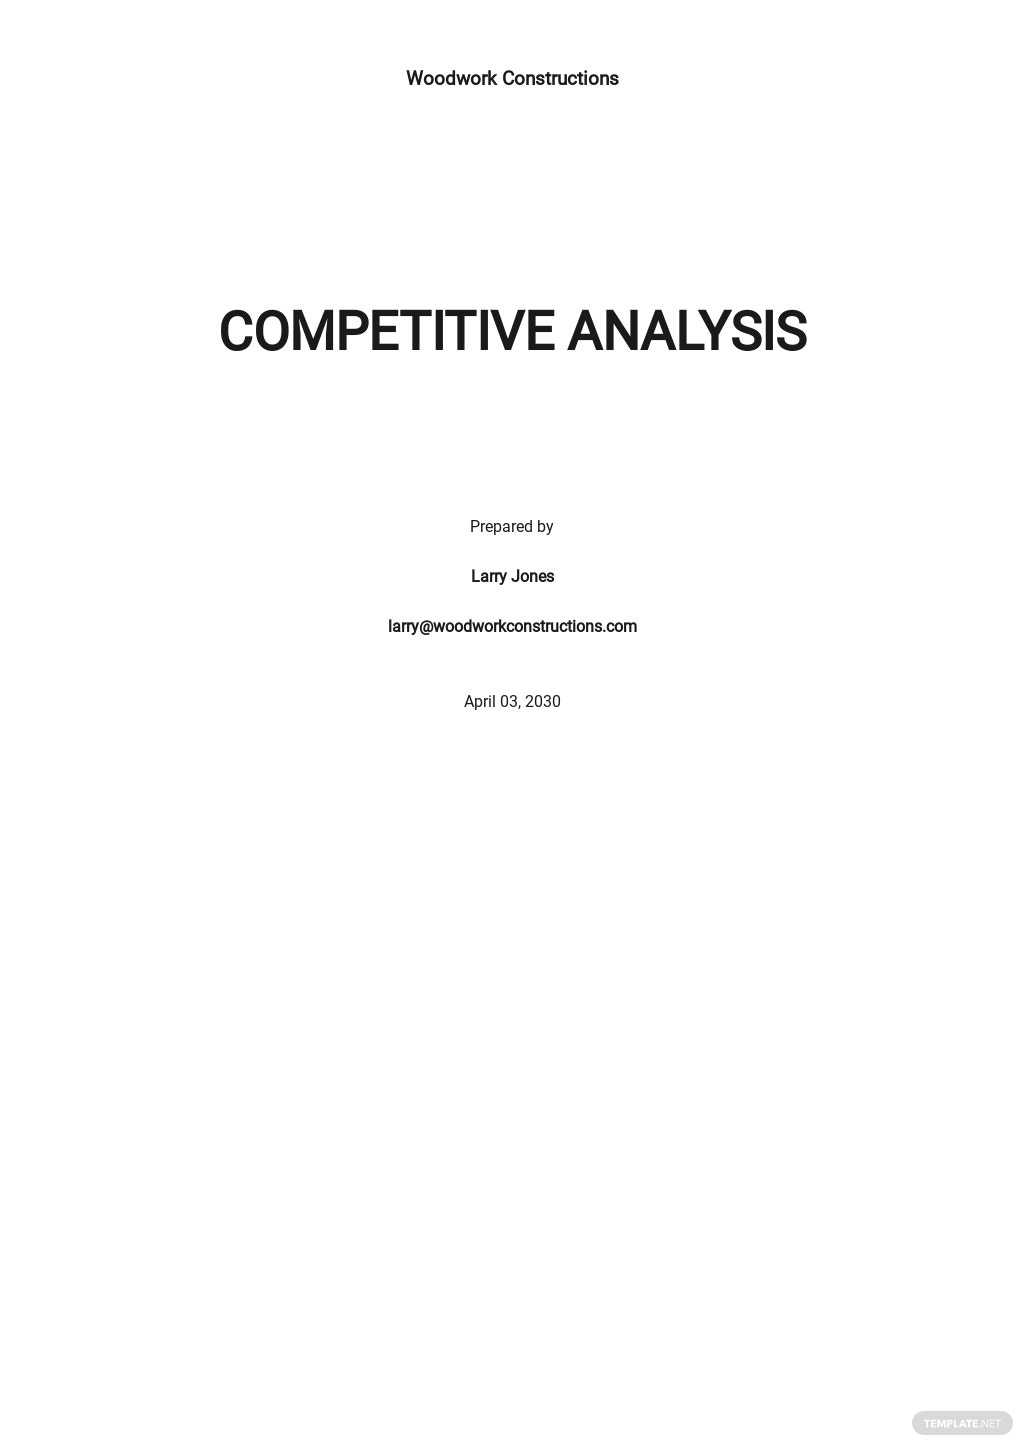 Construction Company Competitive Analysis Template.jpe